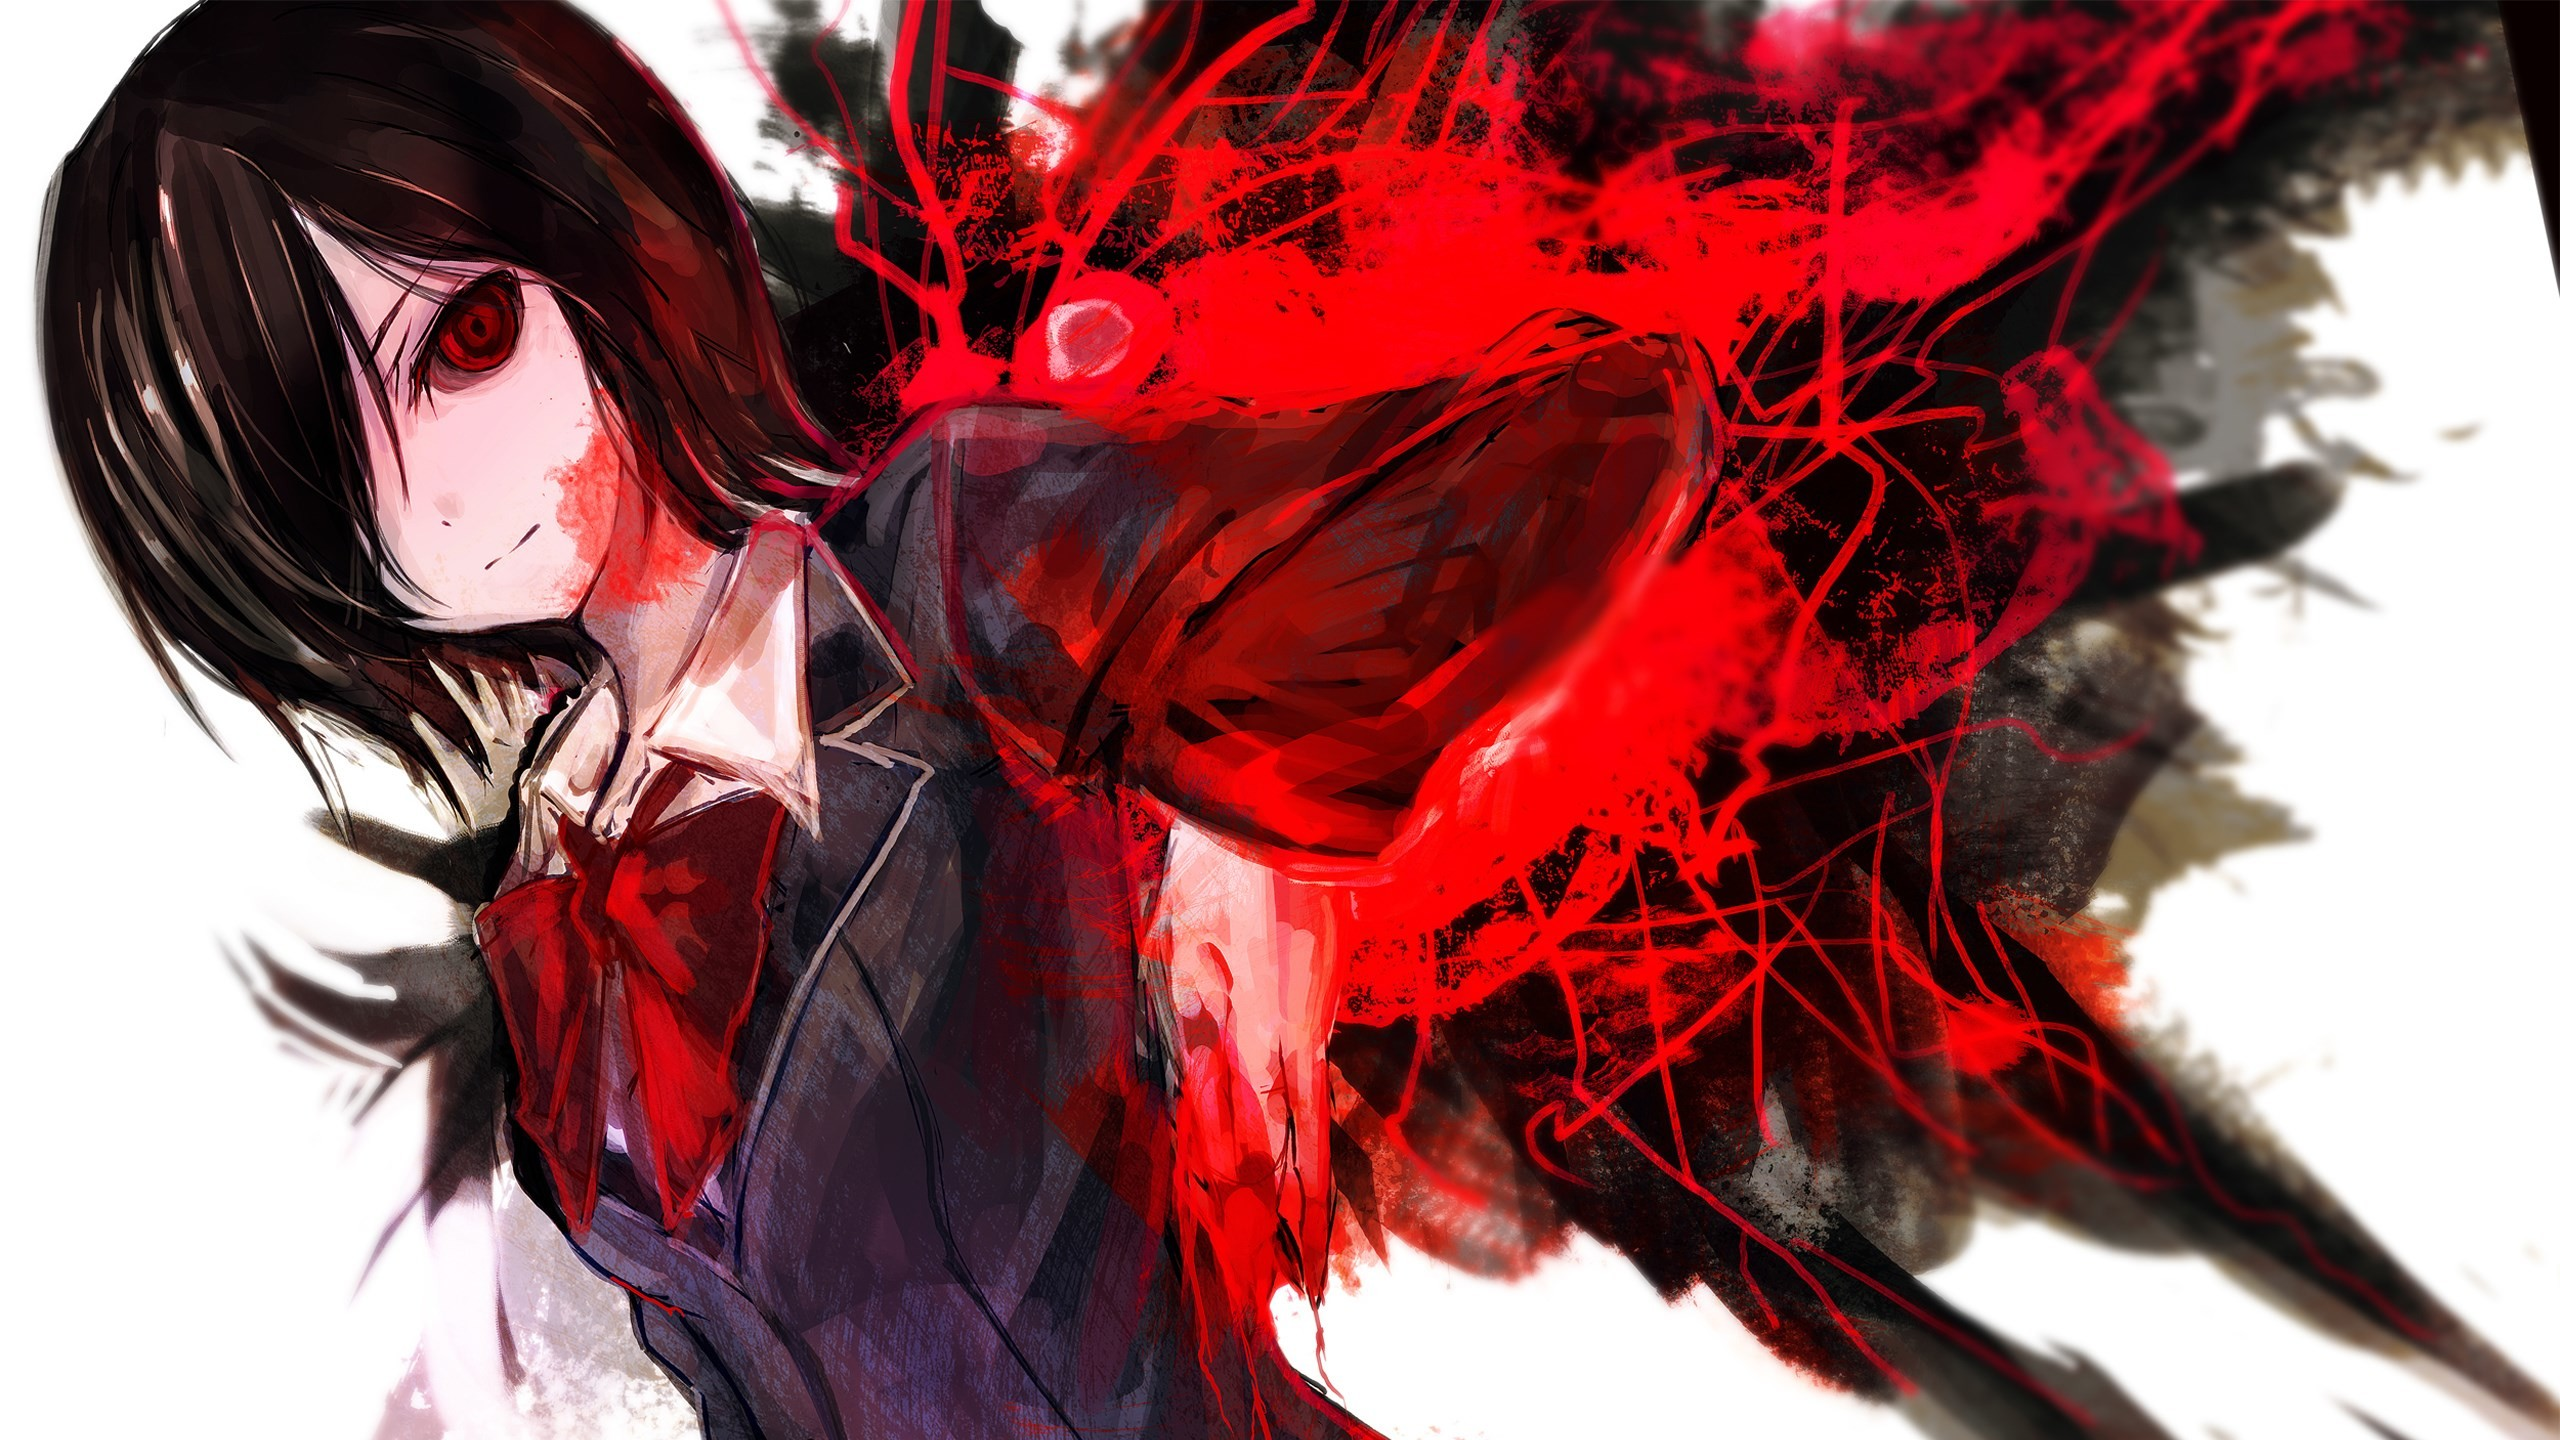 tokyo ghoul wallpaper hd backgrounds images – tokyo ghoul category